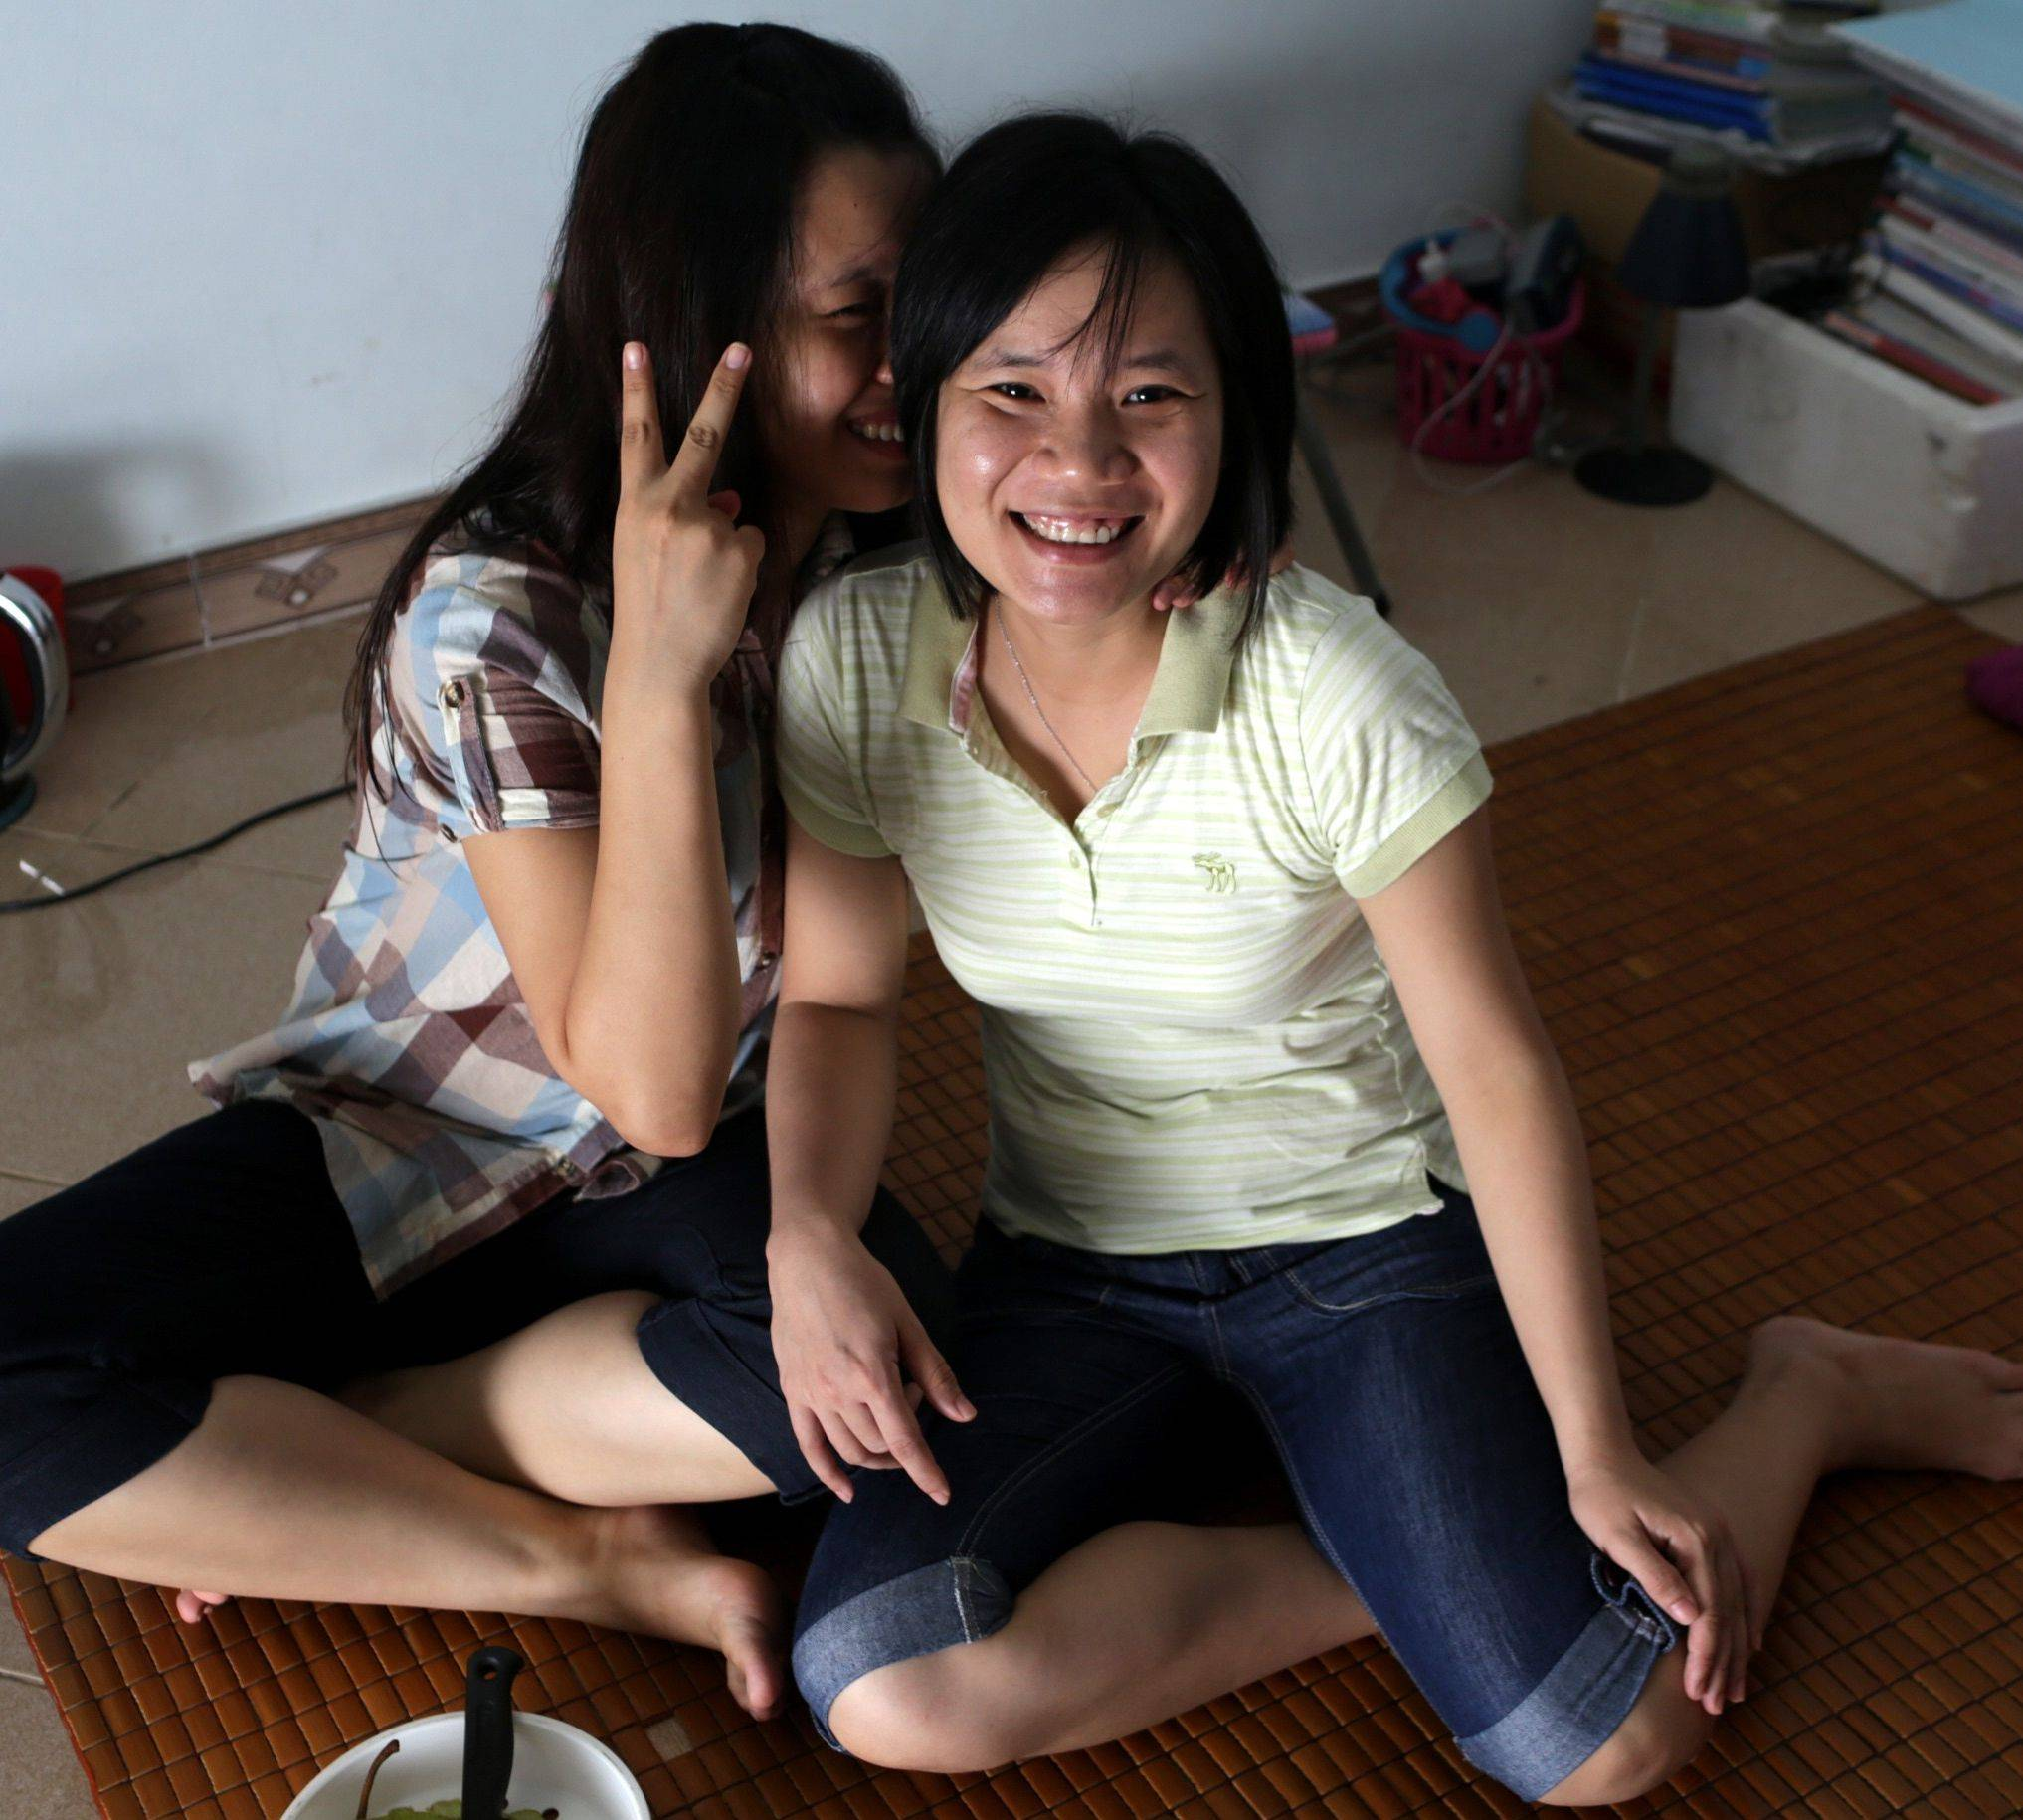 Nguyen Thi Chi, 20, left, and Dinh Thi Hong Loan, 30, pose in their apartment in Hanoi. The couple has dated for more than two years and plans to marry next month.